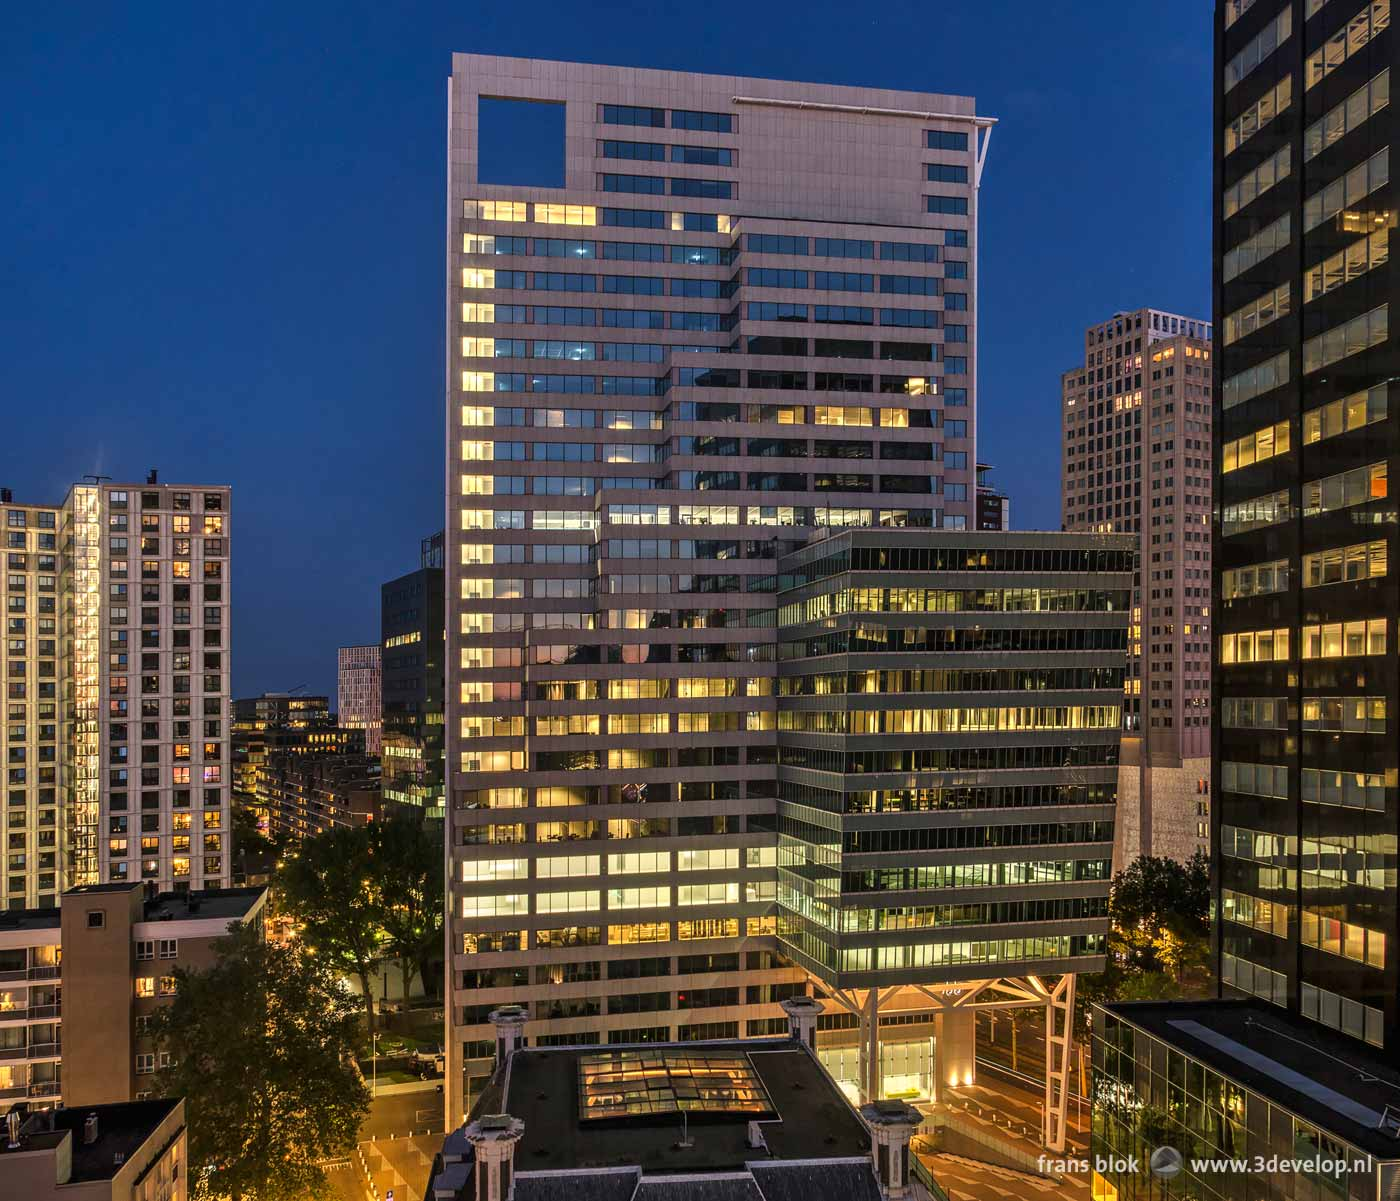 Photo of the Blaak Office Tower, former Fortis building, with next to it the former Robeco tower, at night, seen from the roof of Erasmus House